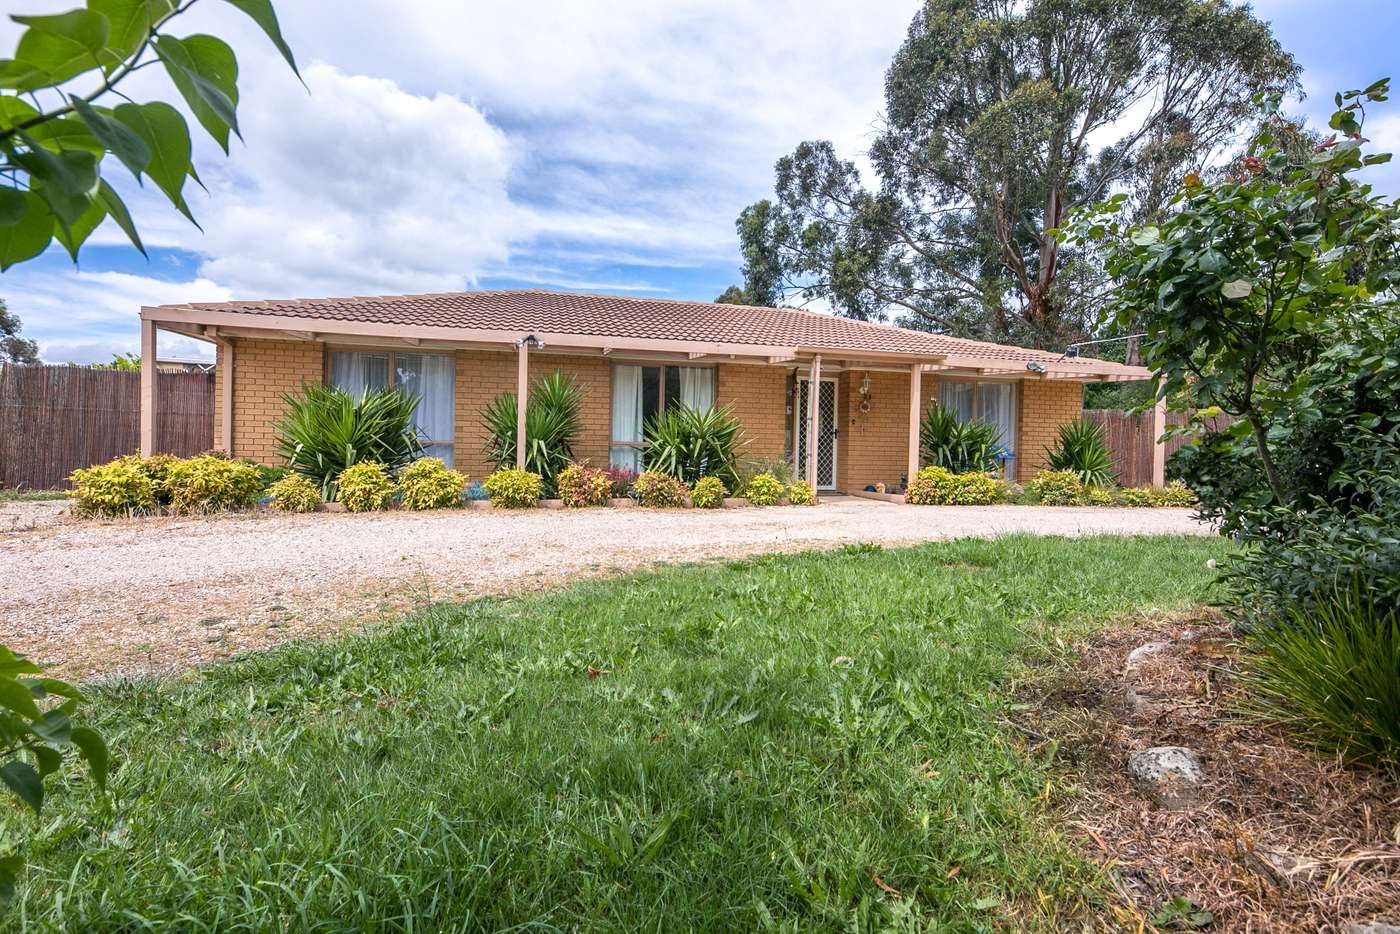 Main view of Homely house listing, 1/23 Reynolds Grove, Romsey VIC 3434